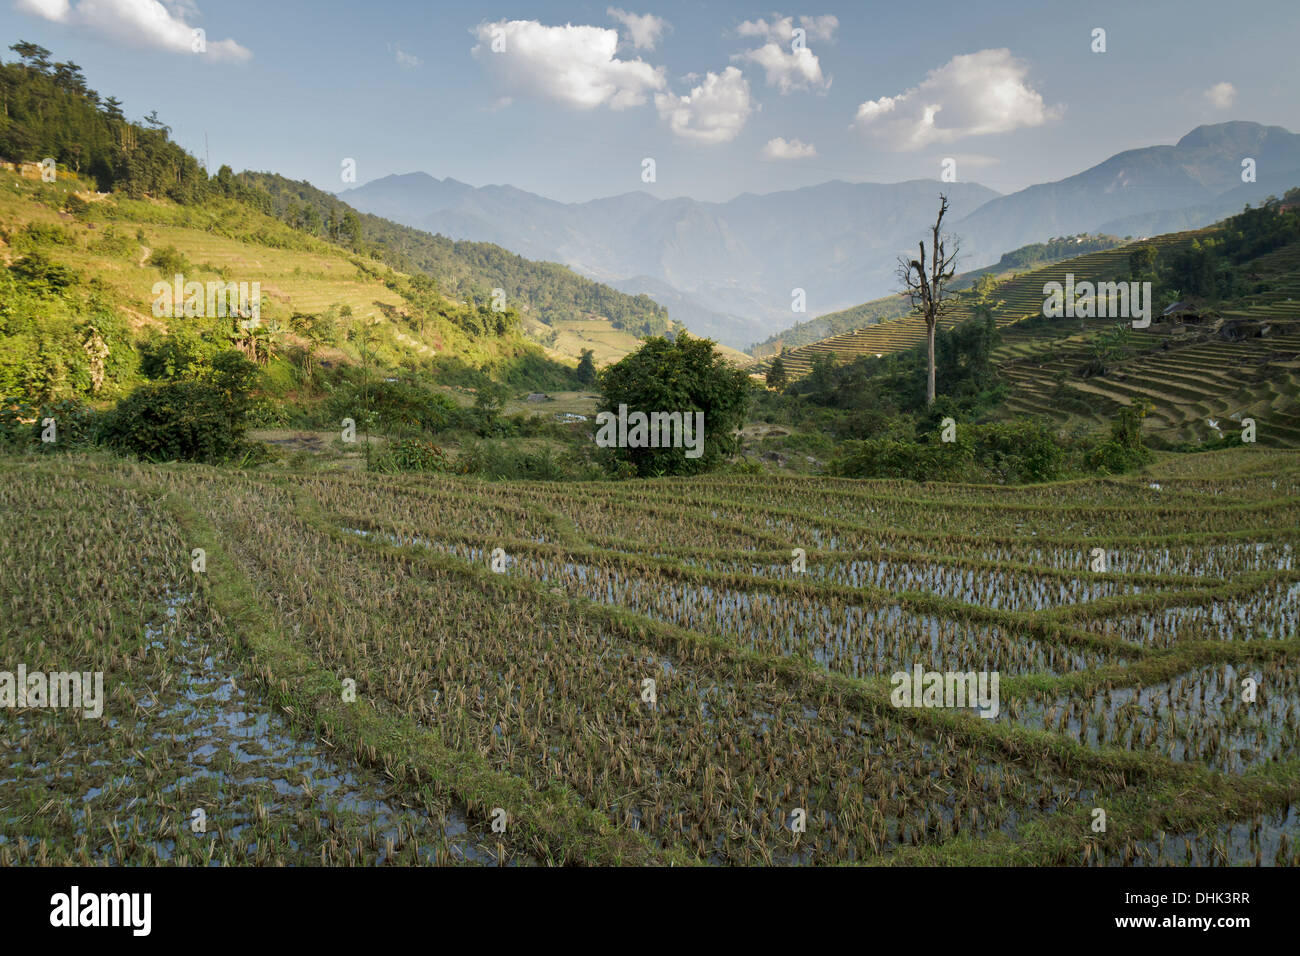 Stunning mountain scenery and many rice terraces in the North West of Vietnam, Lao Cai Province, near Sapa. - Stock Image